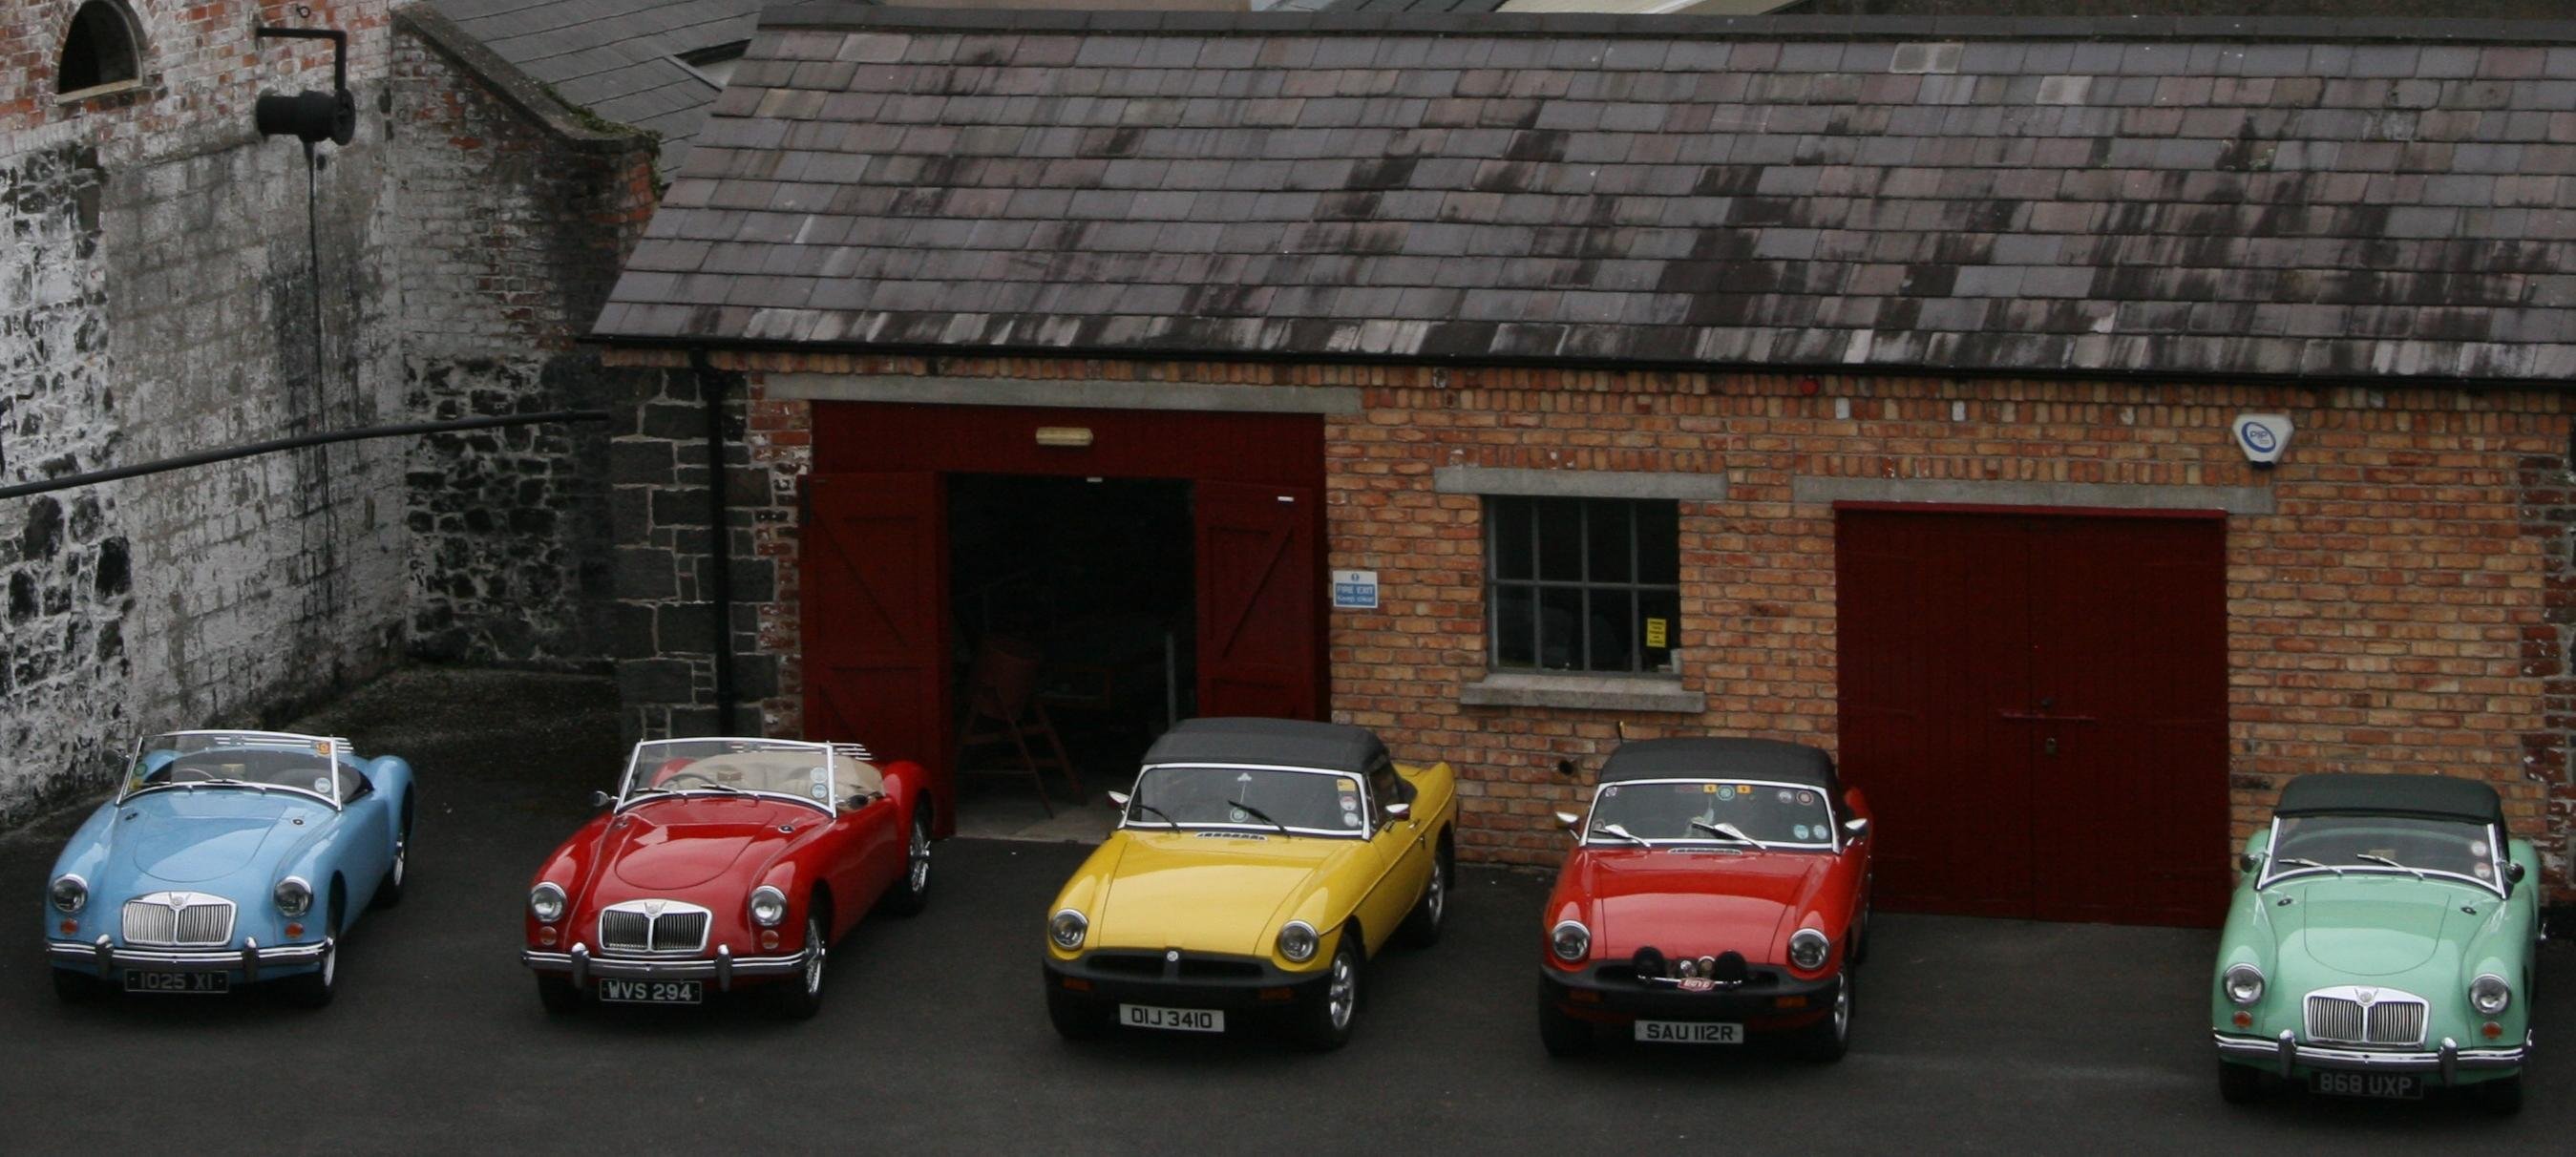 Cars parked at the Flame museum on heritage day 2014.